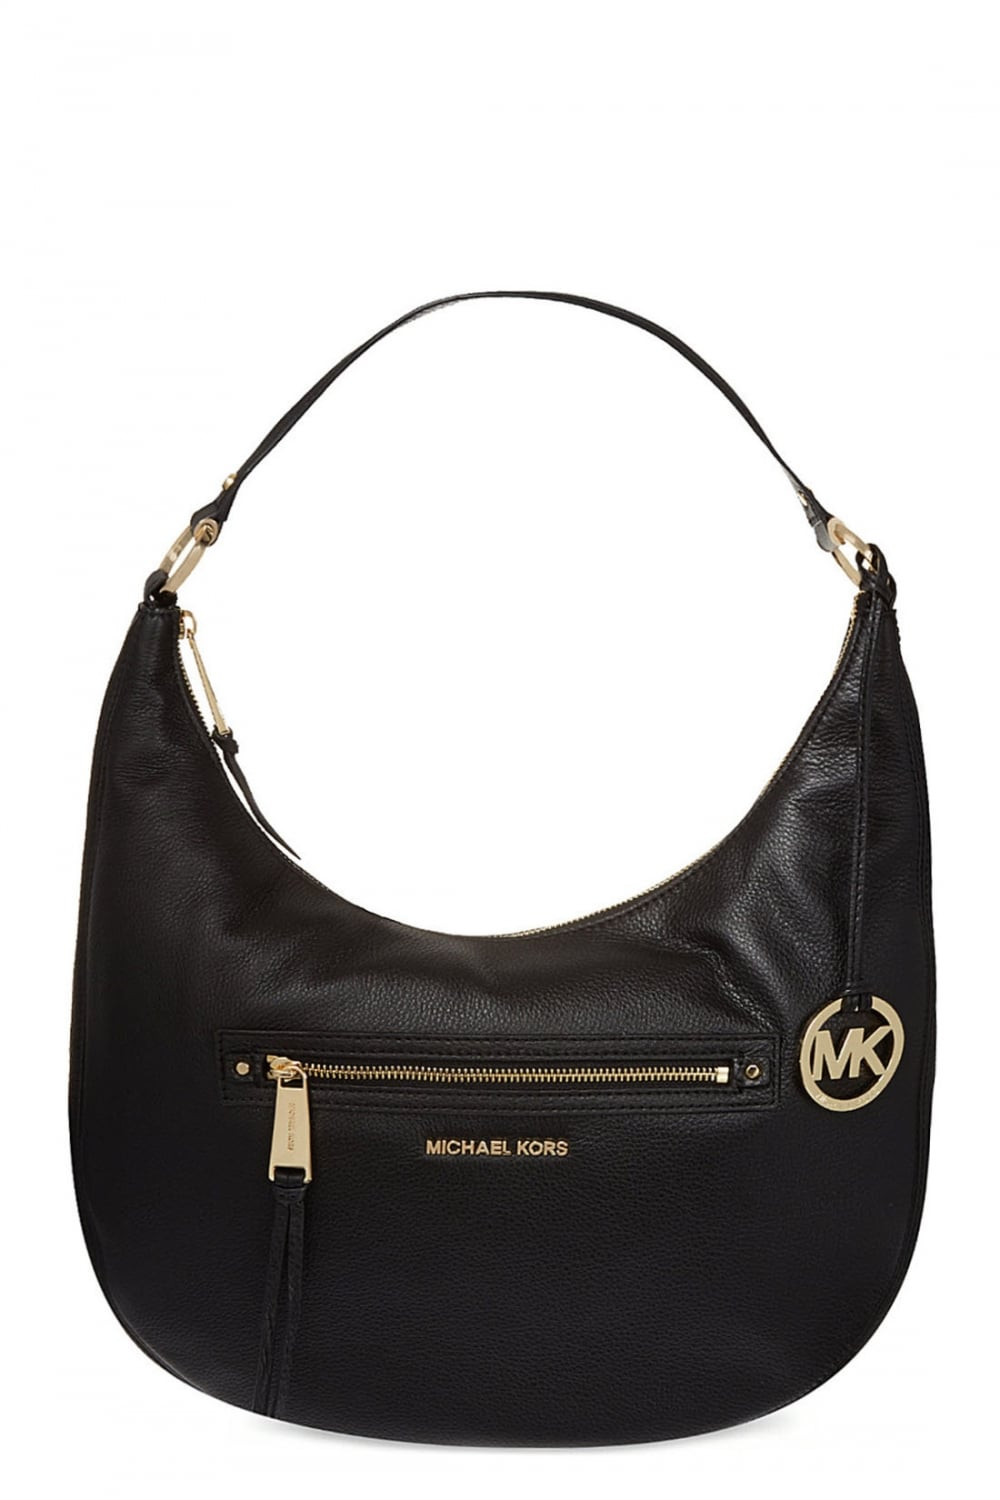 eca1983f9270 MICHAEL KORS Michael Kors Rhea Zip Large Messenger Black - Clothing from  Circle Fashion UK